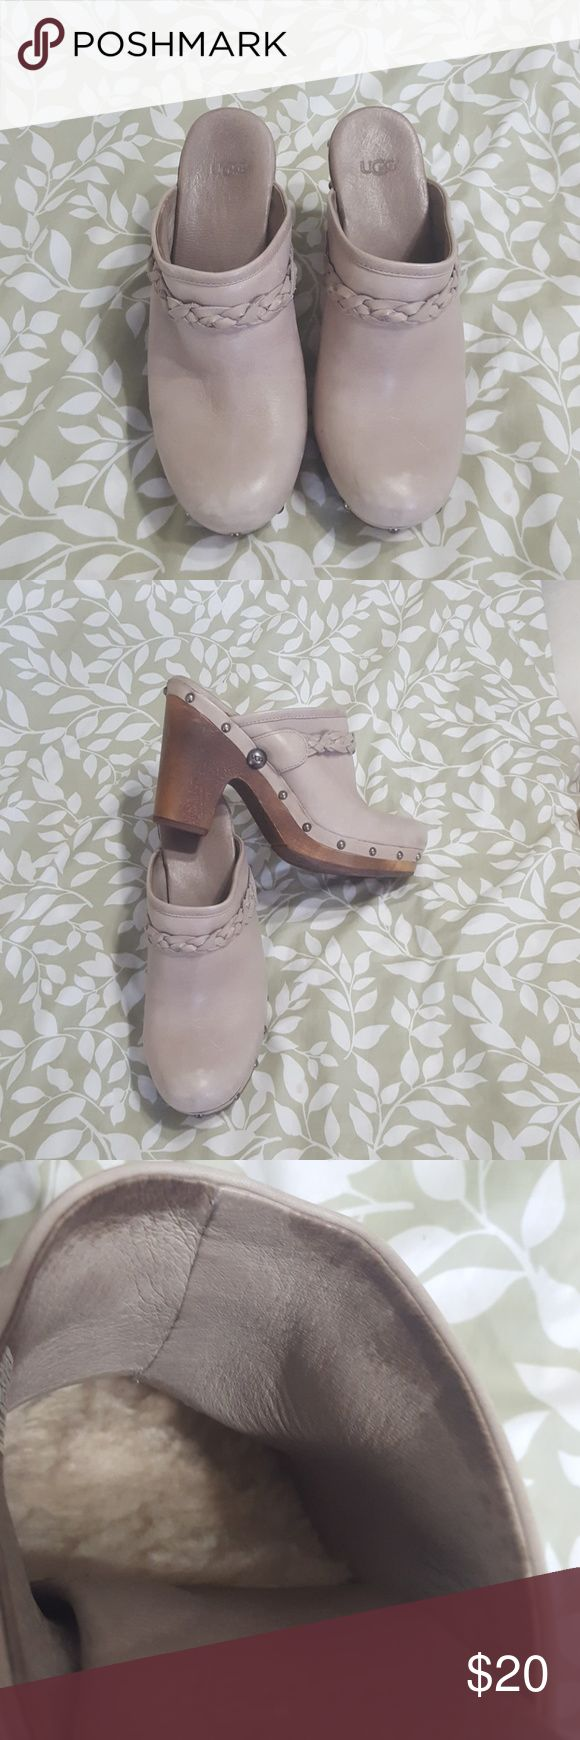 """UGG Grey shearling lined leather heel clogs GUC 4"""" heel, scuff marks from wear, leather needs a little TLC, most of those should come out. UGG Shoes Mules & Clogs"""